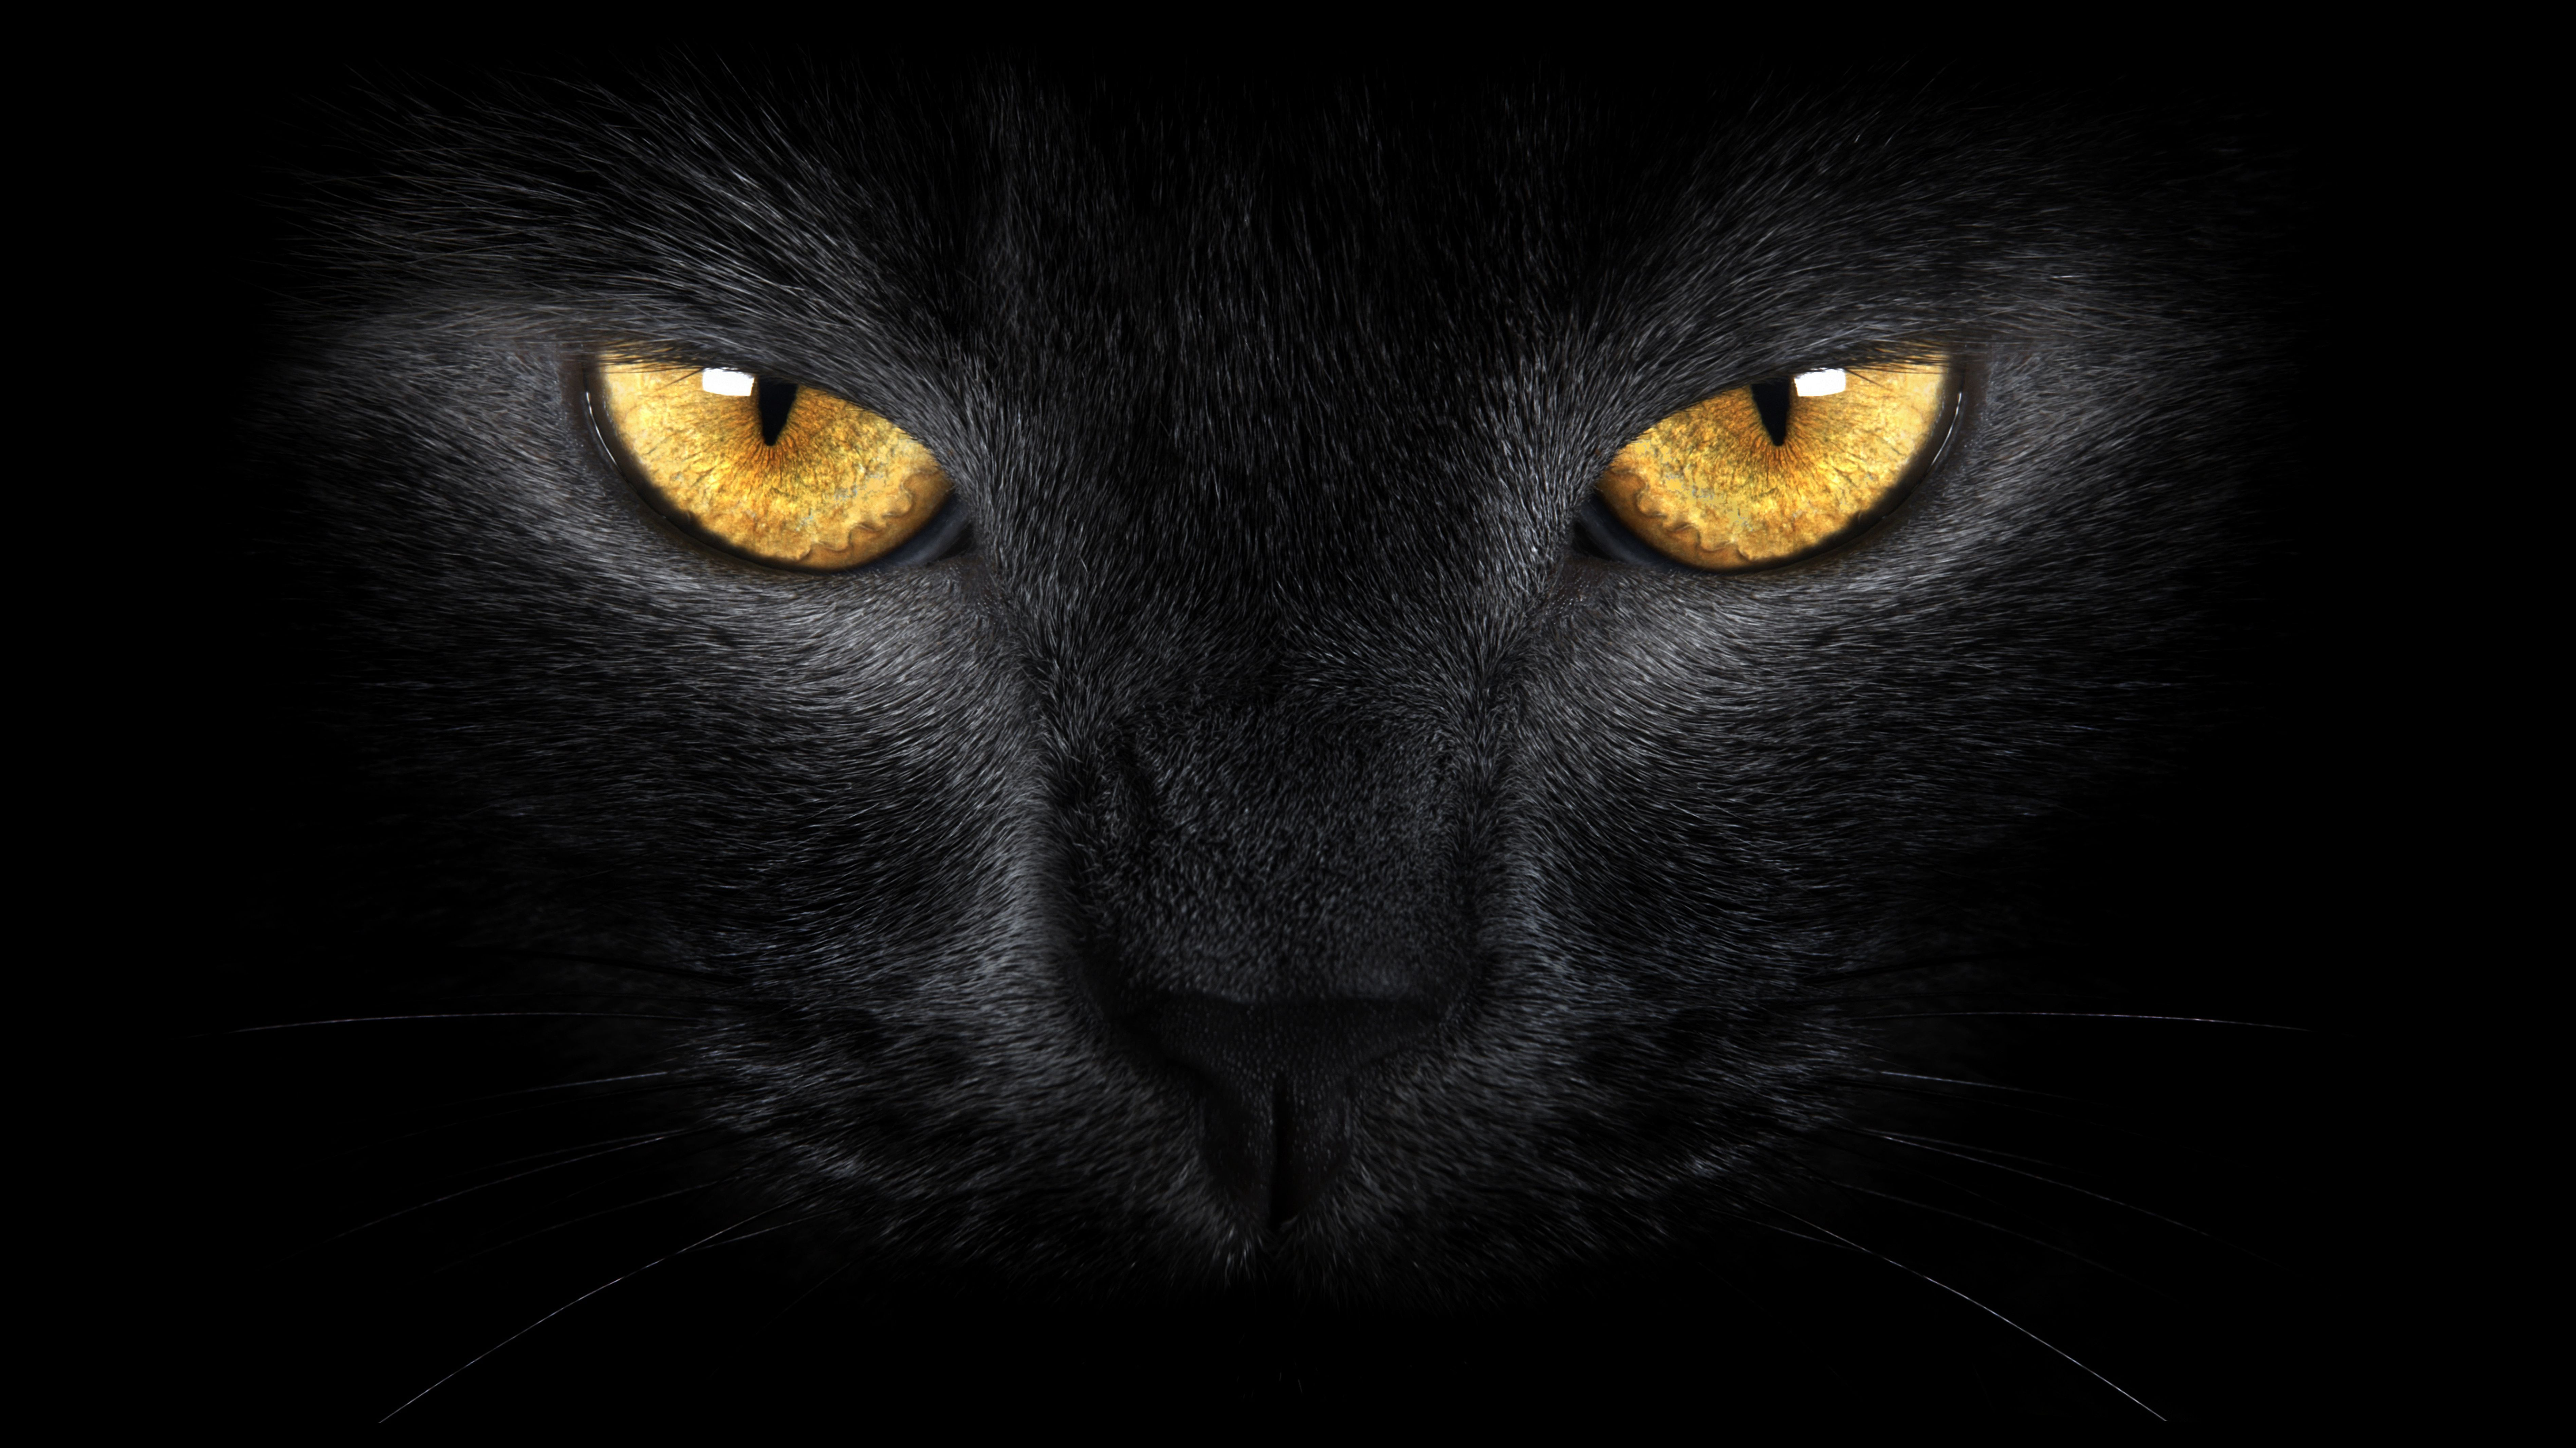 Download Wallpaper Cat Eyes Black Free Desktop Wallpaper In The Resolution 7588x4264 Picture 392552 Black Cat Eyes Cats Cat Poems